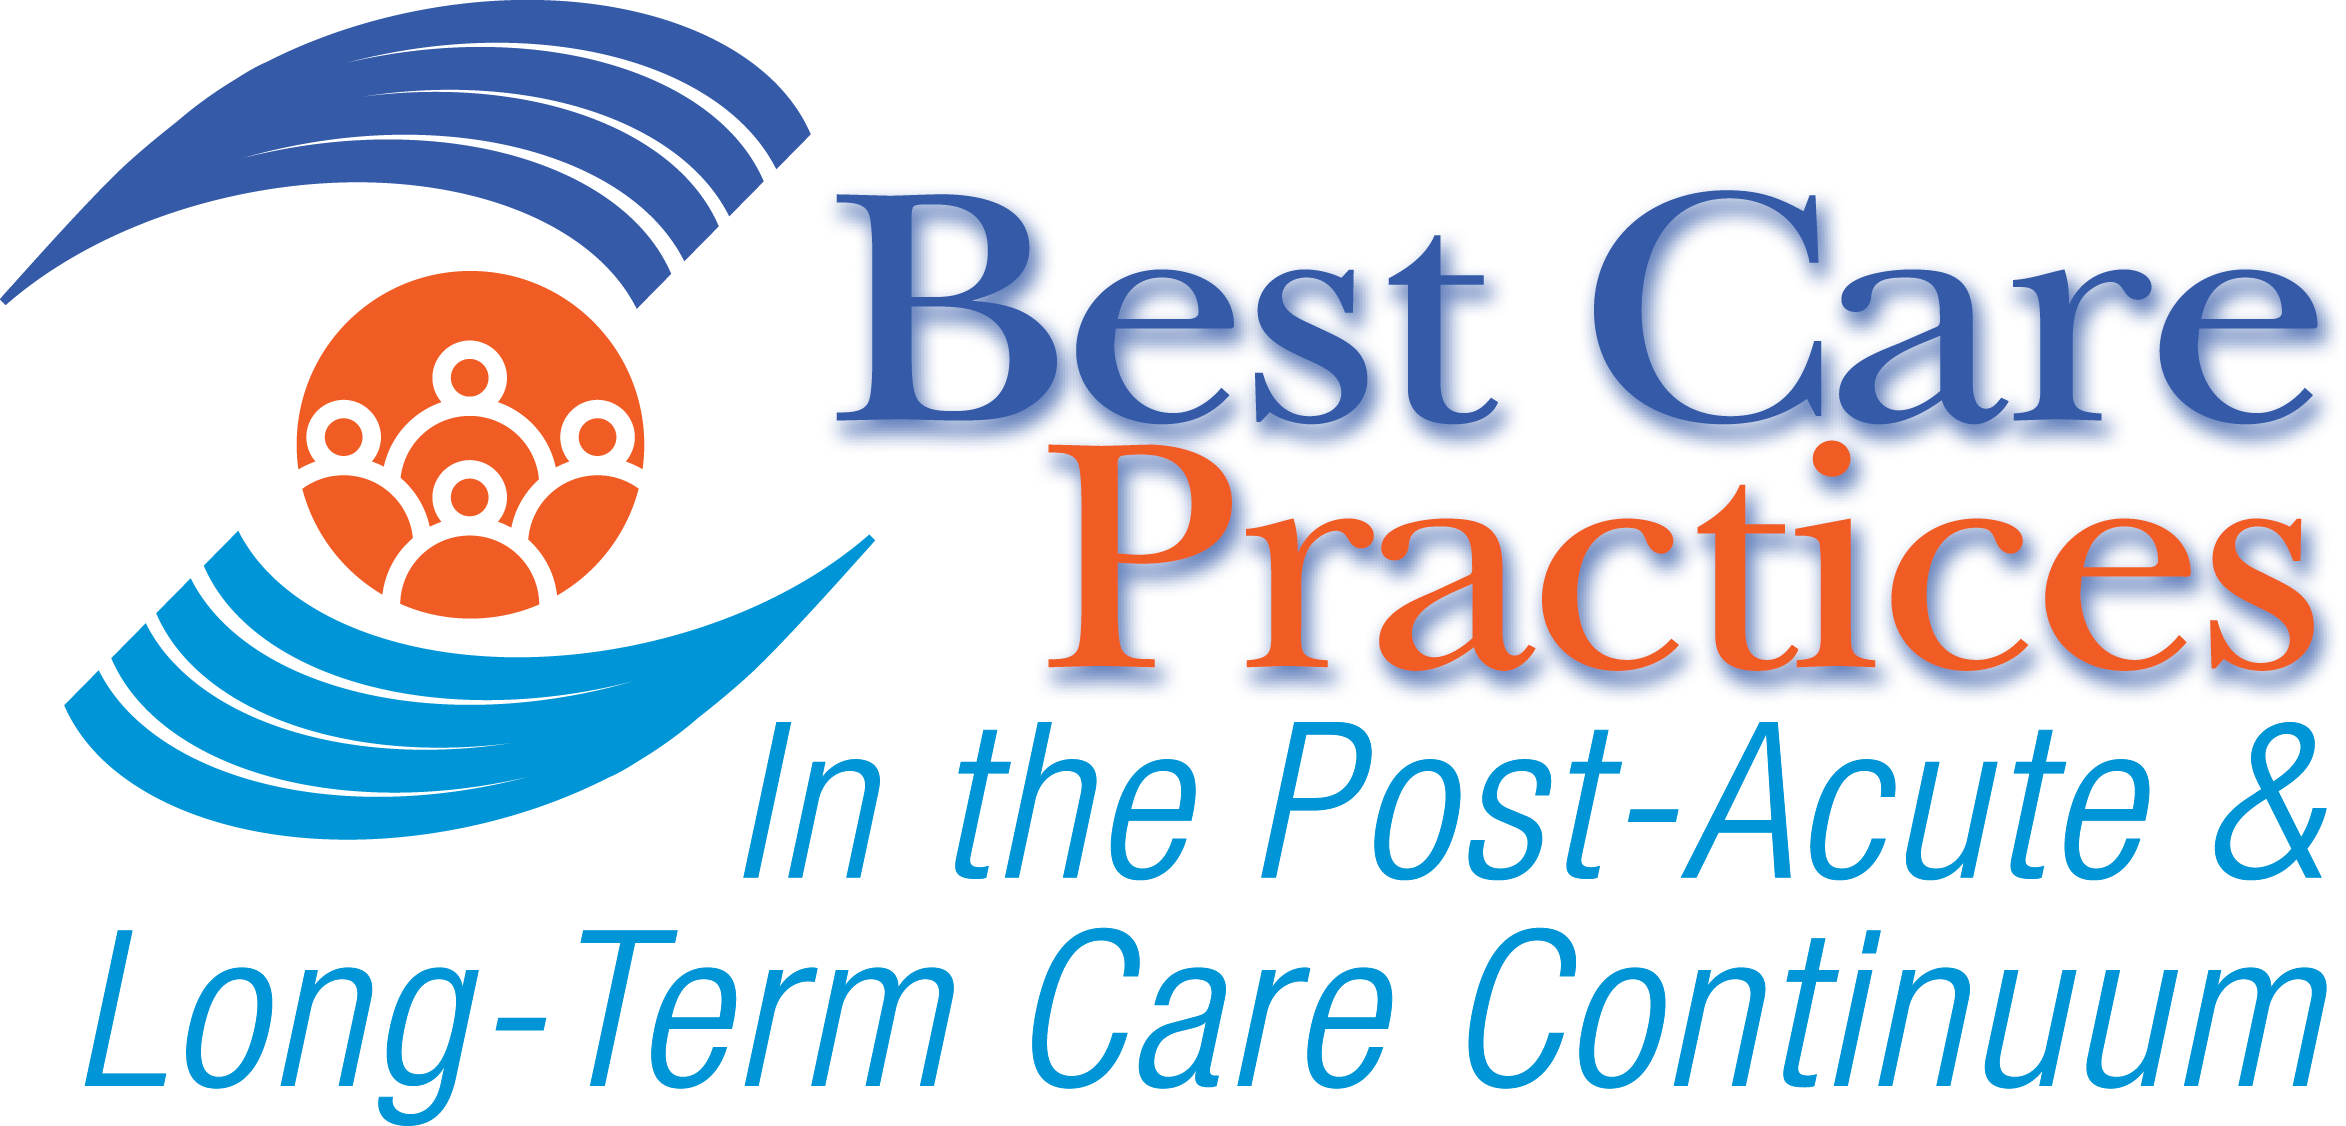 Best Care Practices